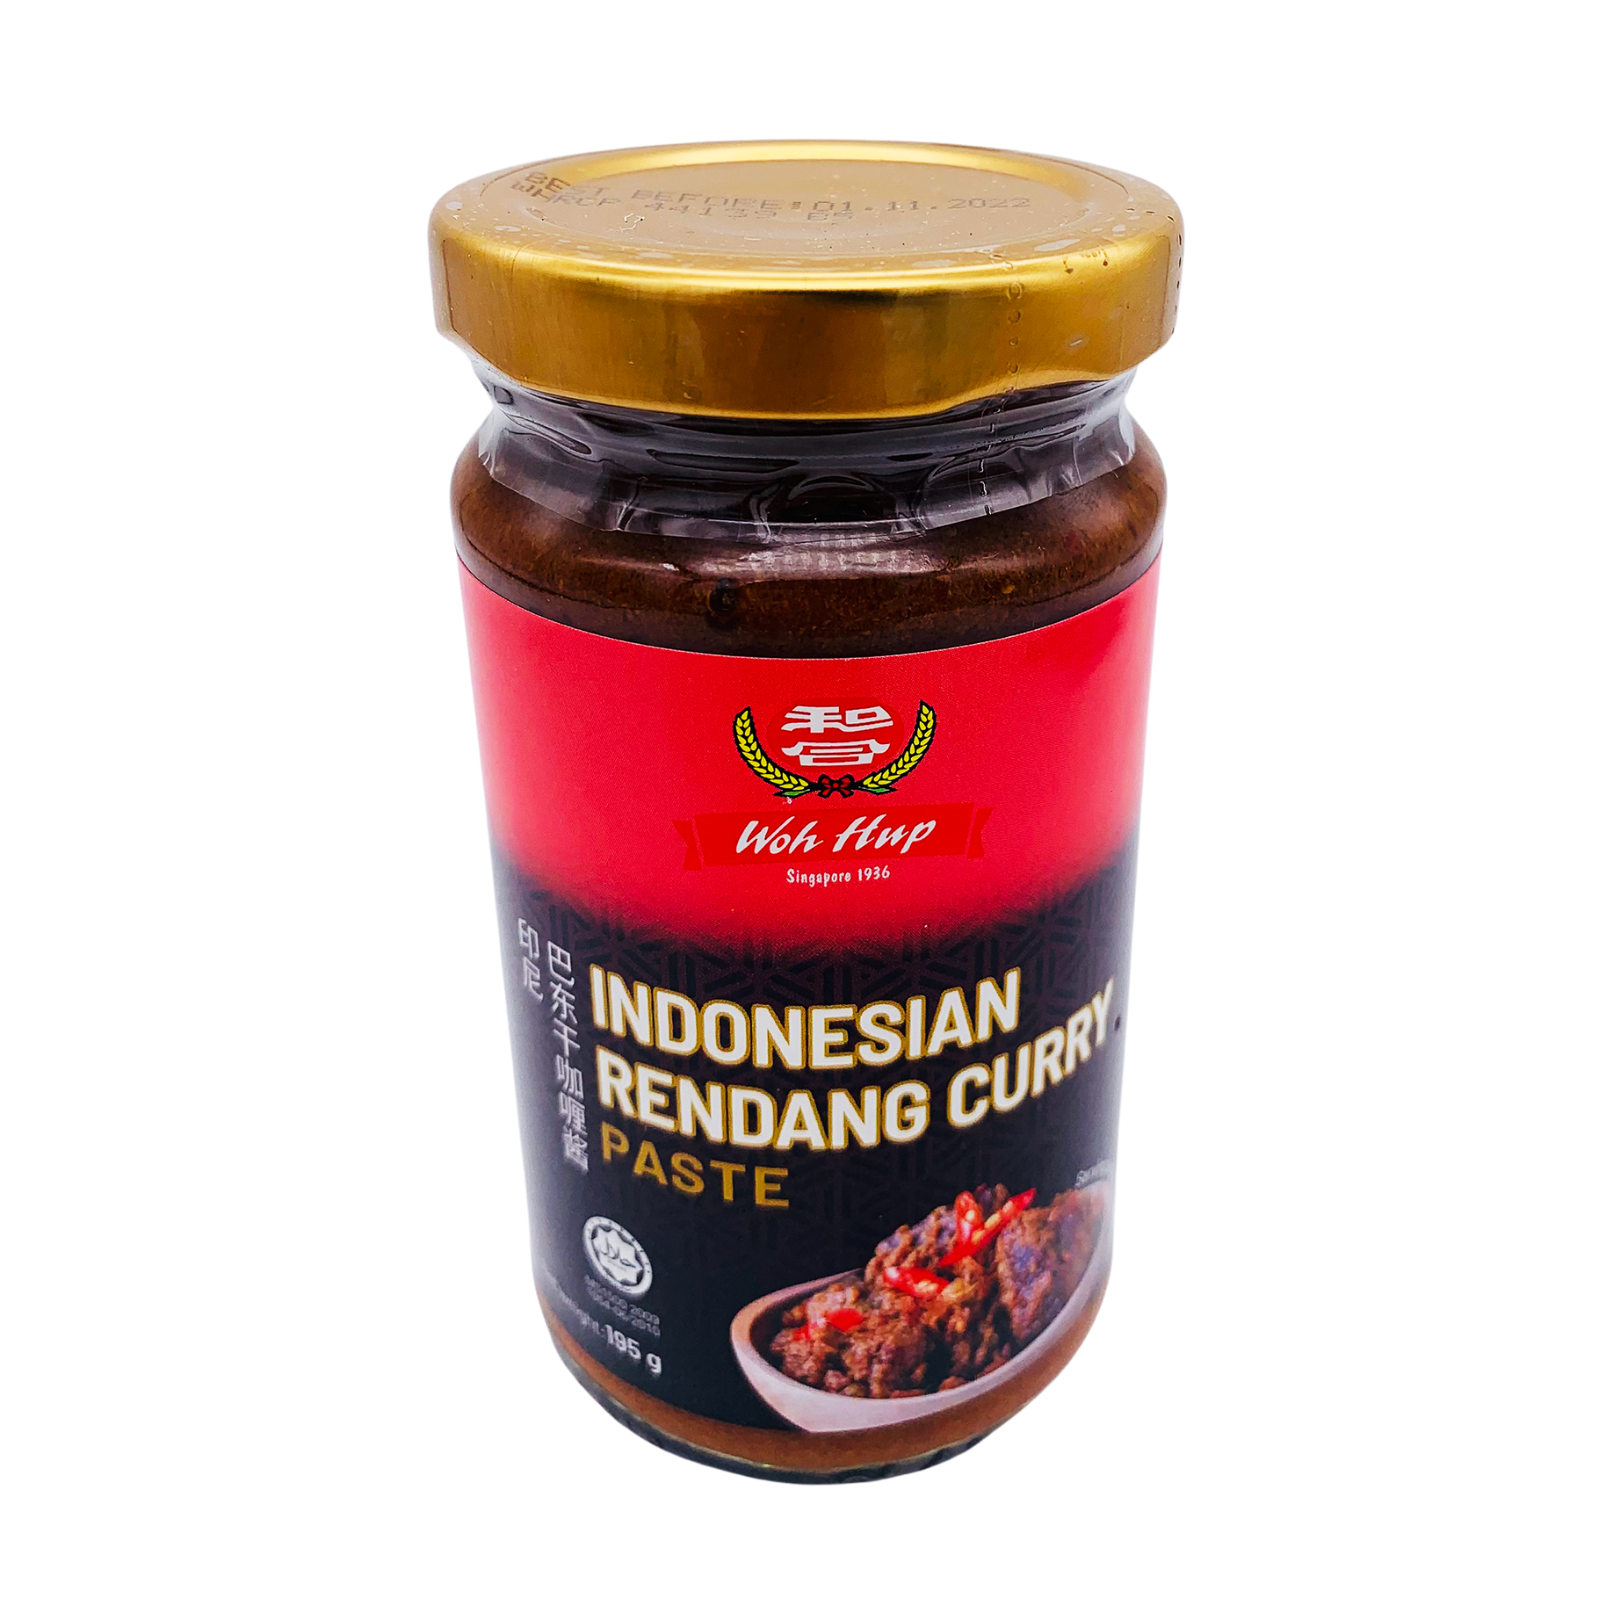 Indonesian Rendang Curry Paste 195g by Woh Hup